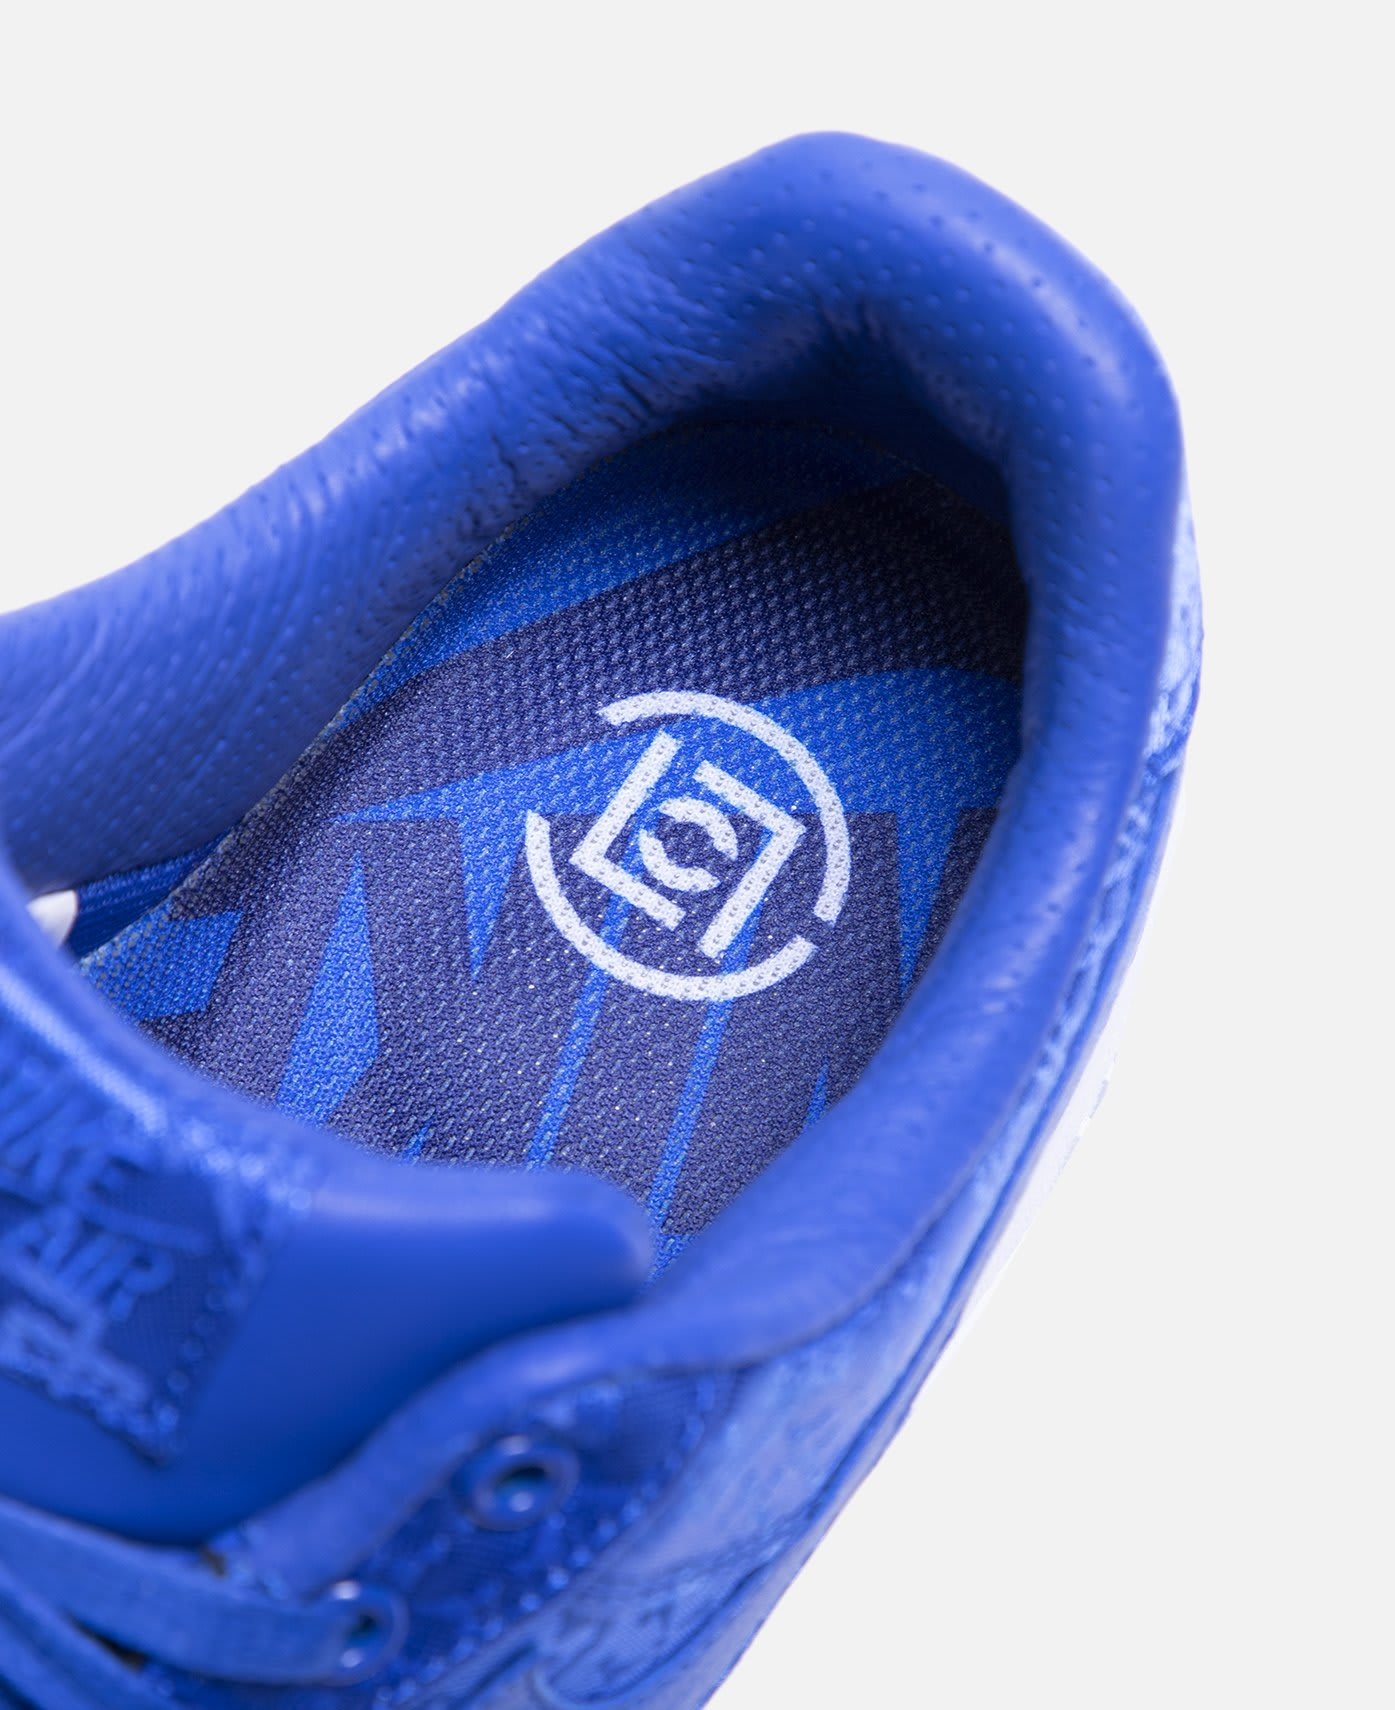 clot-nike-air-force-1-low-royal-university-blue-silk-insole